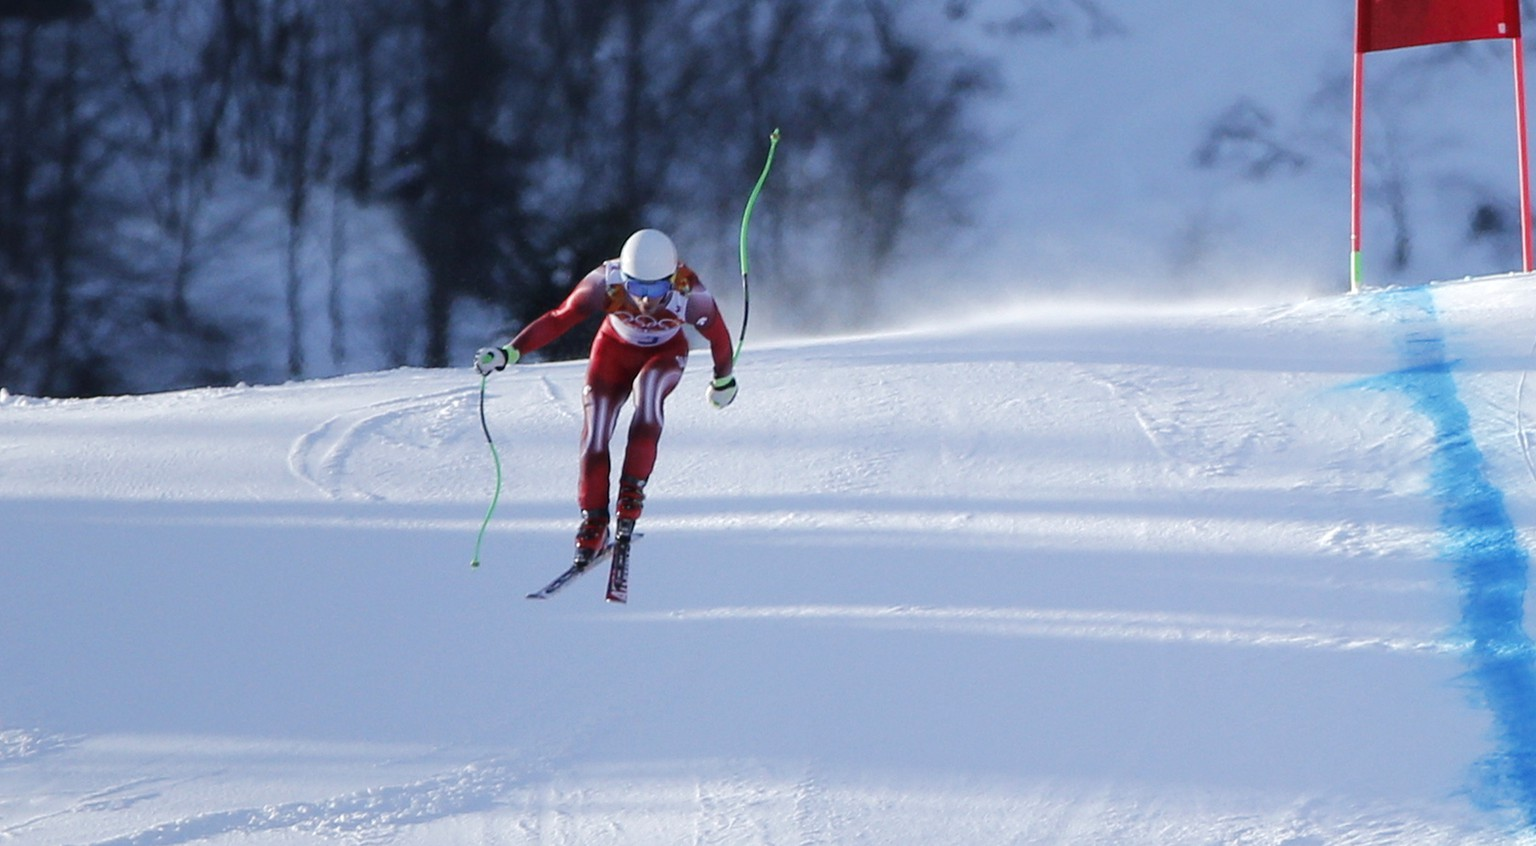 Switzerland's Carlo Janka makes the final jump during a men's downhill training run for the Sochi 2014 Winter Olympics, Friday, Feb. 7, 2014, in Krasnaya Polyana, Russia. (AP Photo/Christophe Ena)